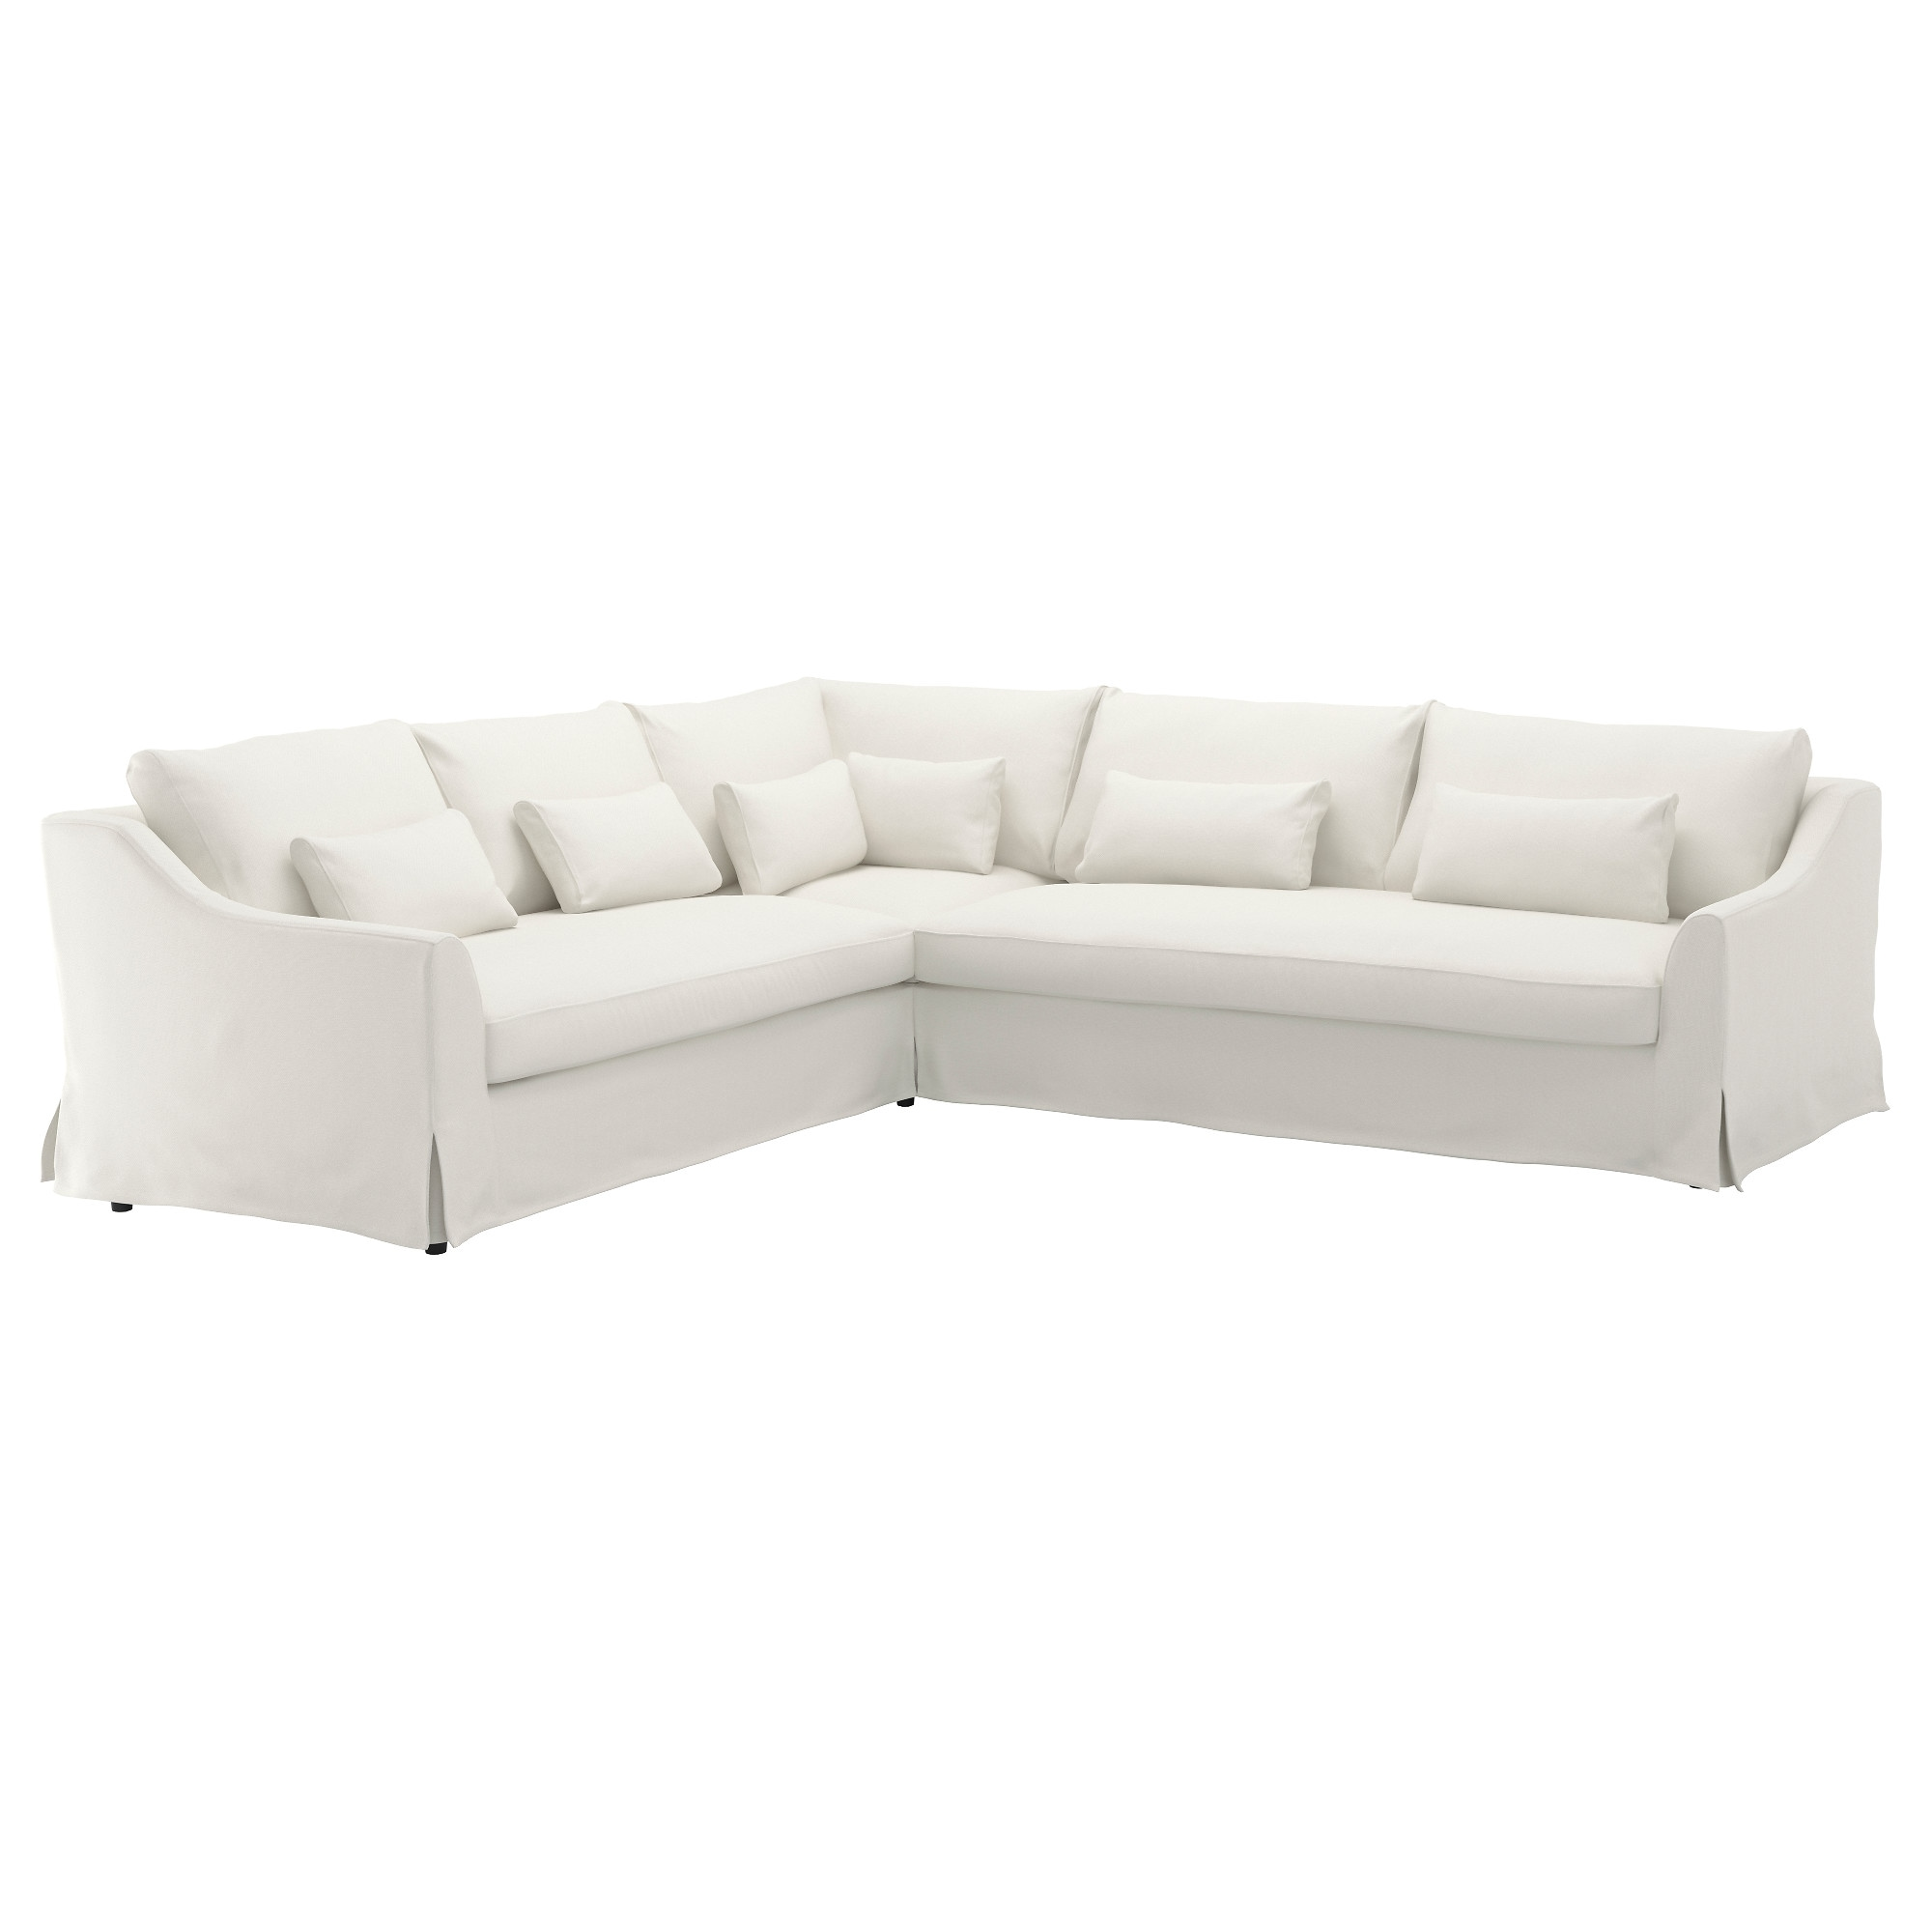 FÄrlÖv Sectional 5 Seat Sofa Right Flodafors White Height Including Back Cushions